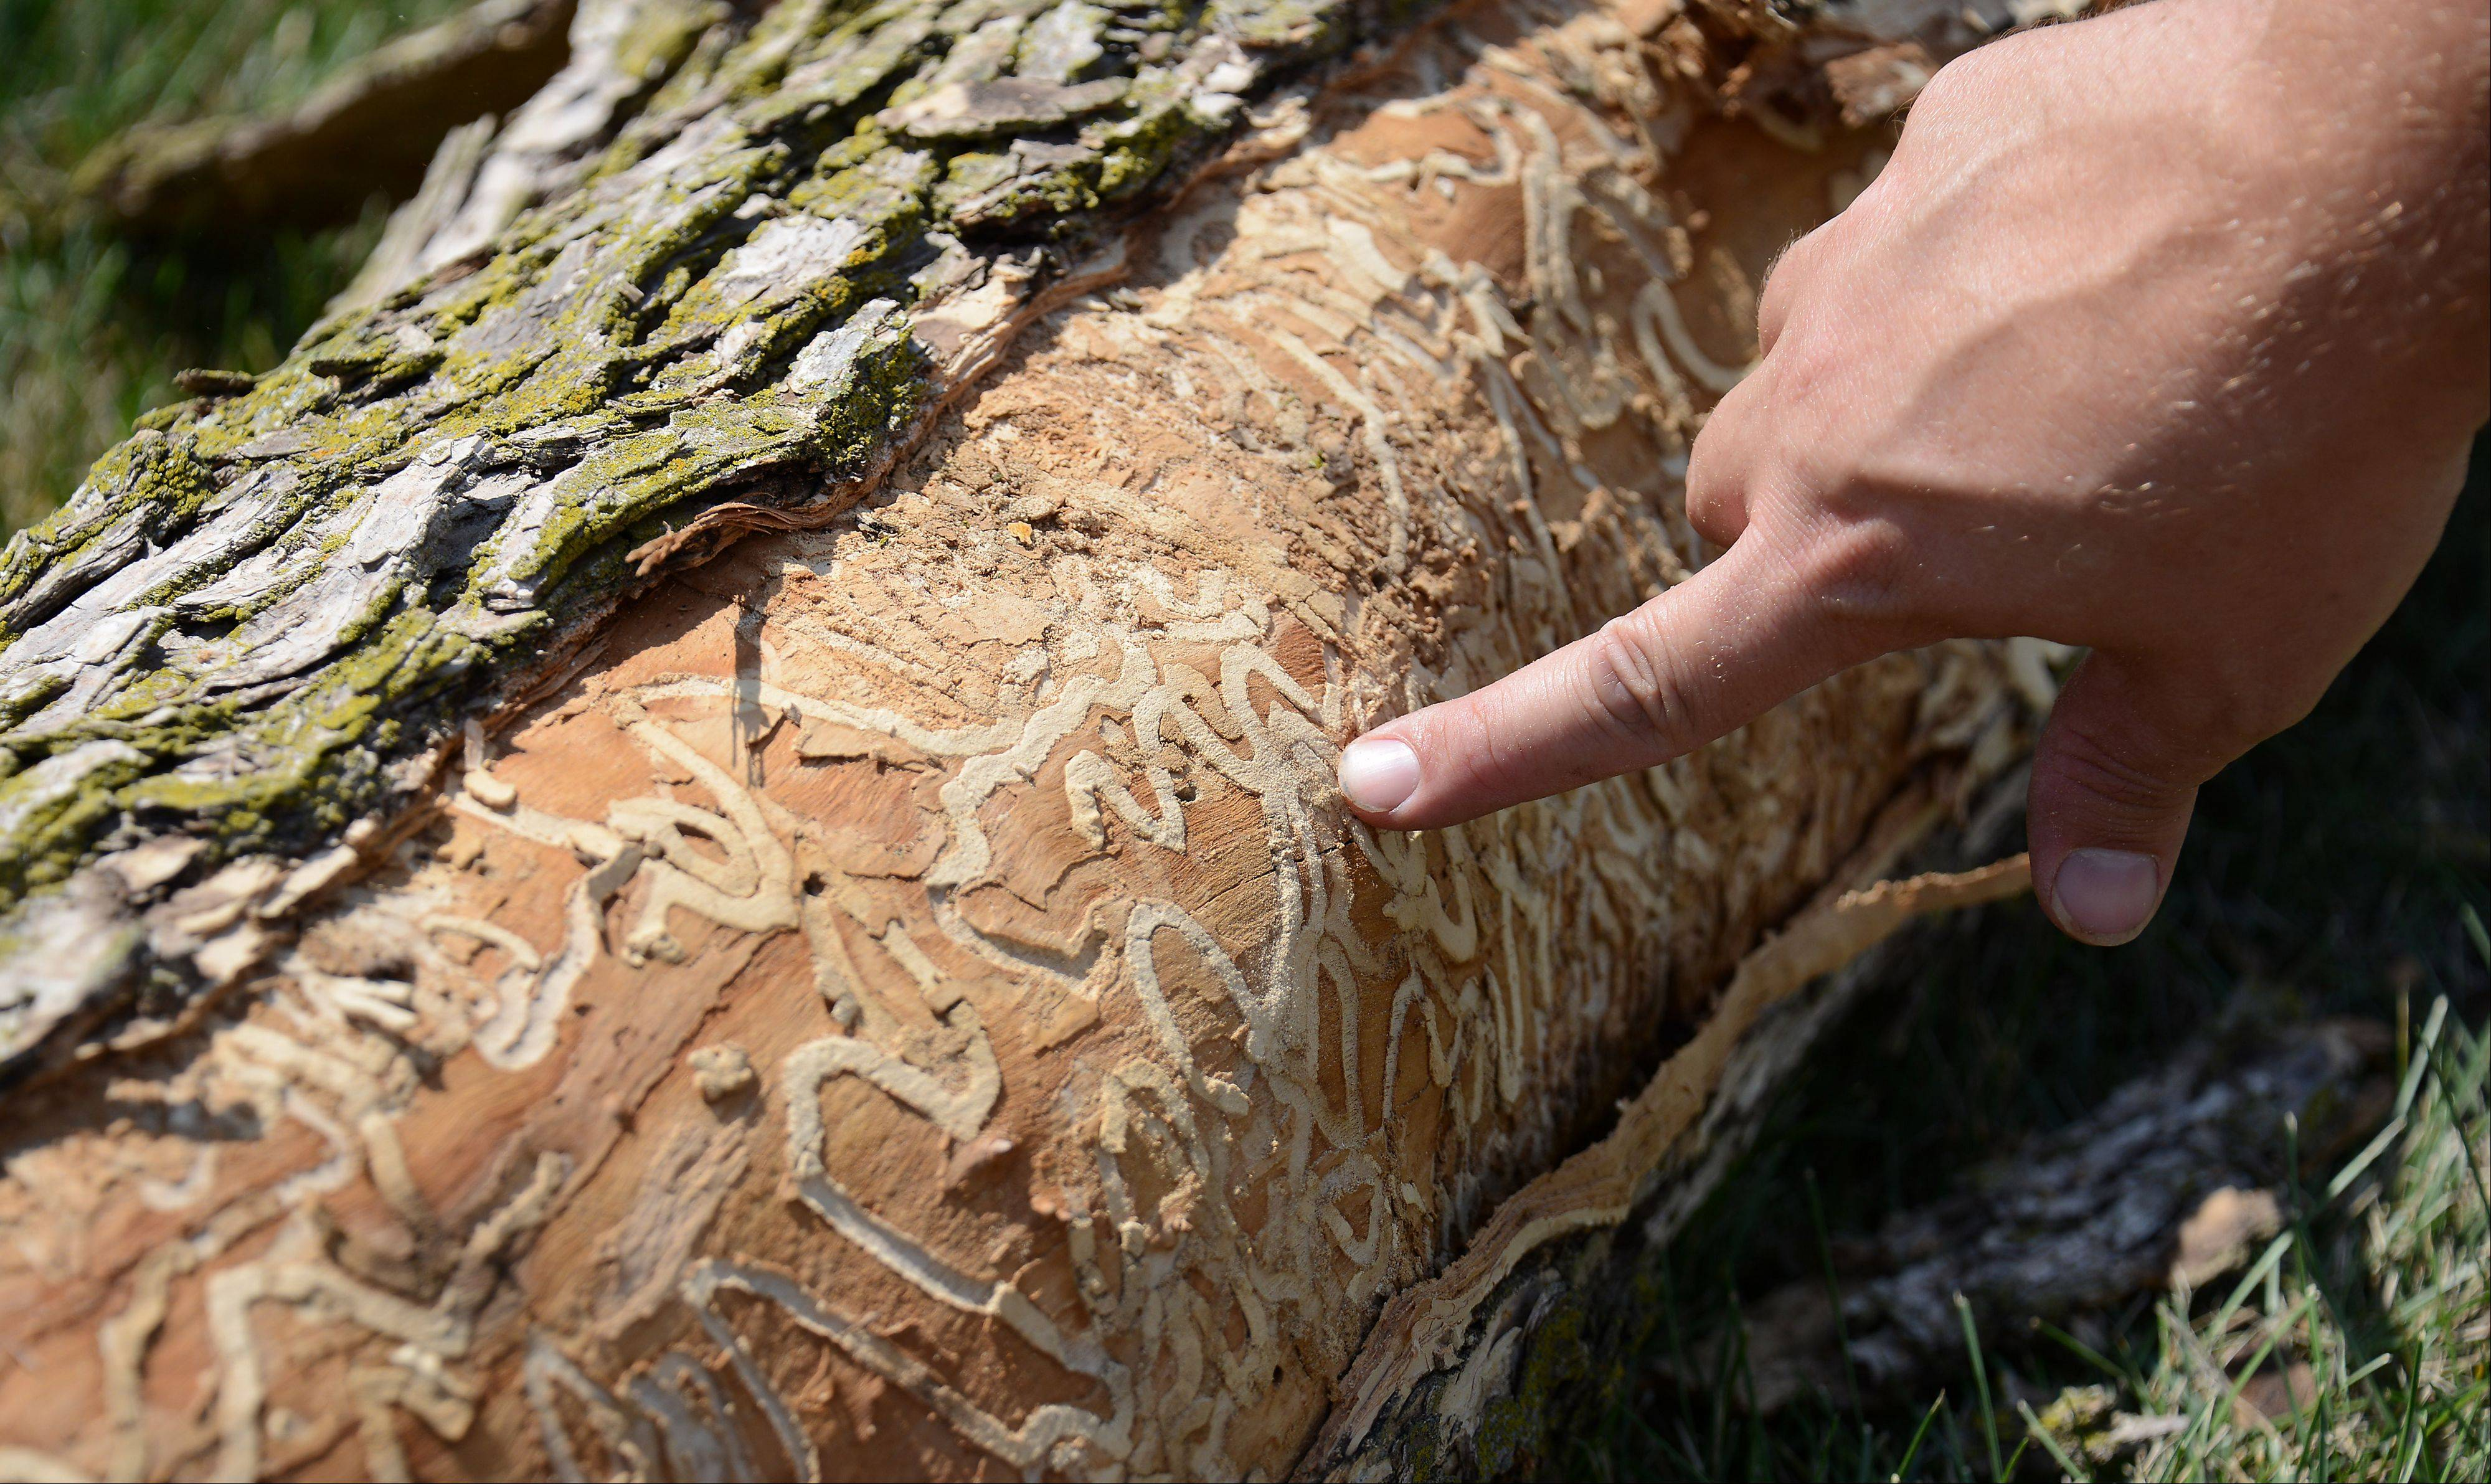 Travis Glay, manager of LandScapes Concepts of Grayslake, points out the destructive grid pattern of the emerald ash borer beetle after they cut down one of the 1,500 hundred trees slated for the chopping block in Schaumburg.